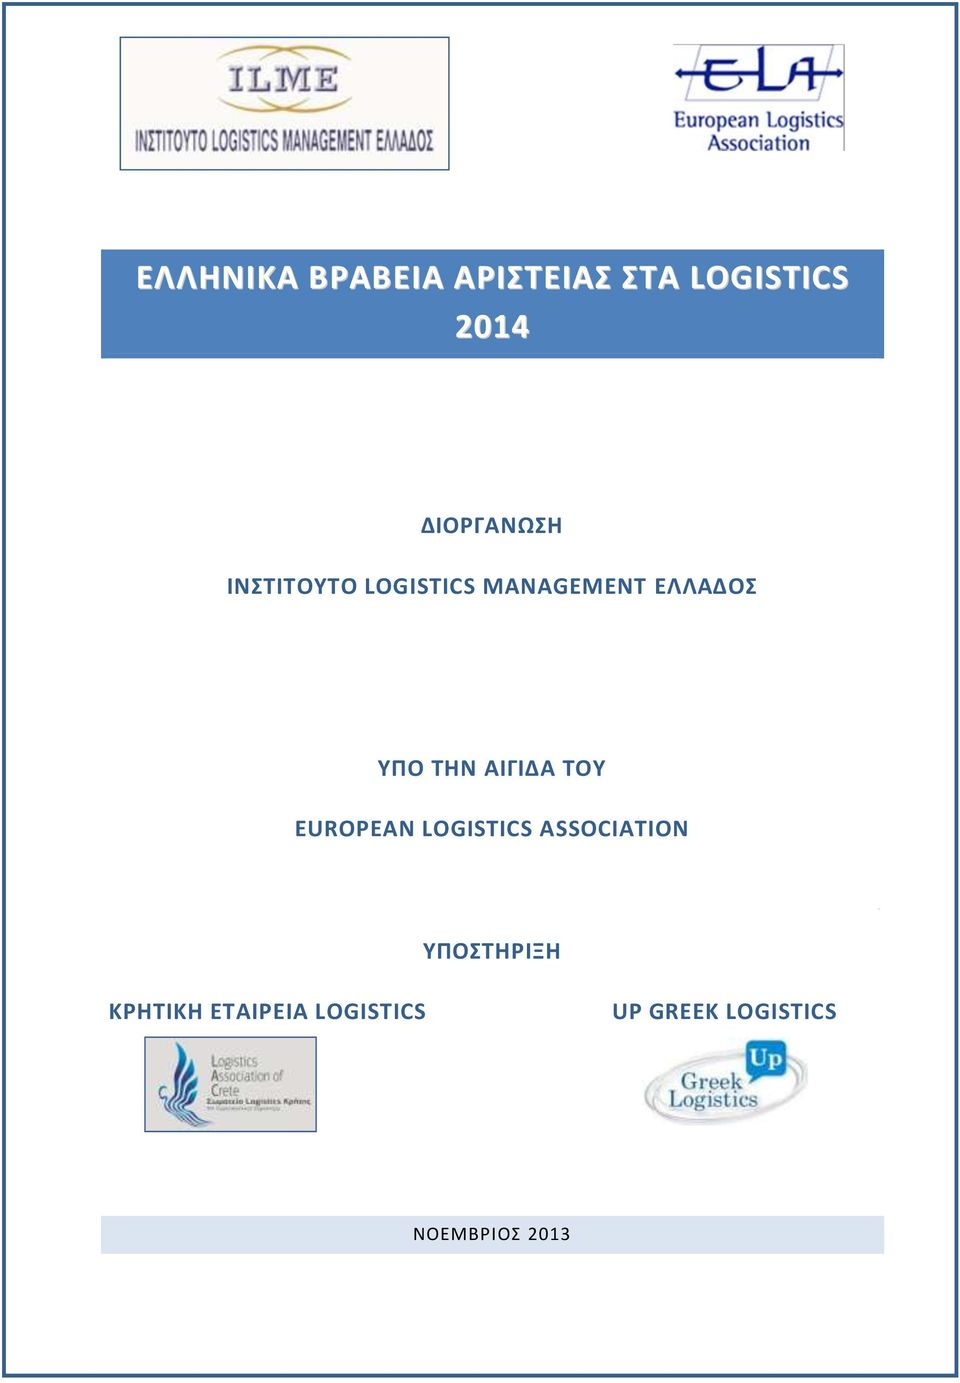 ΤΗΝ ΑΙΓΙΔΑ ΤΟΥ EUROPEAN LOGISTICS ASSOCIATION